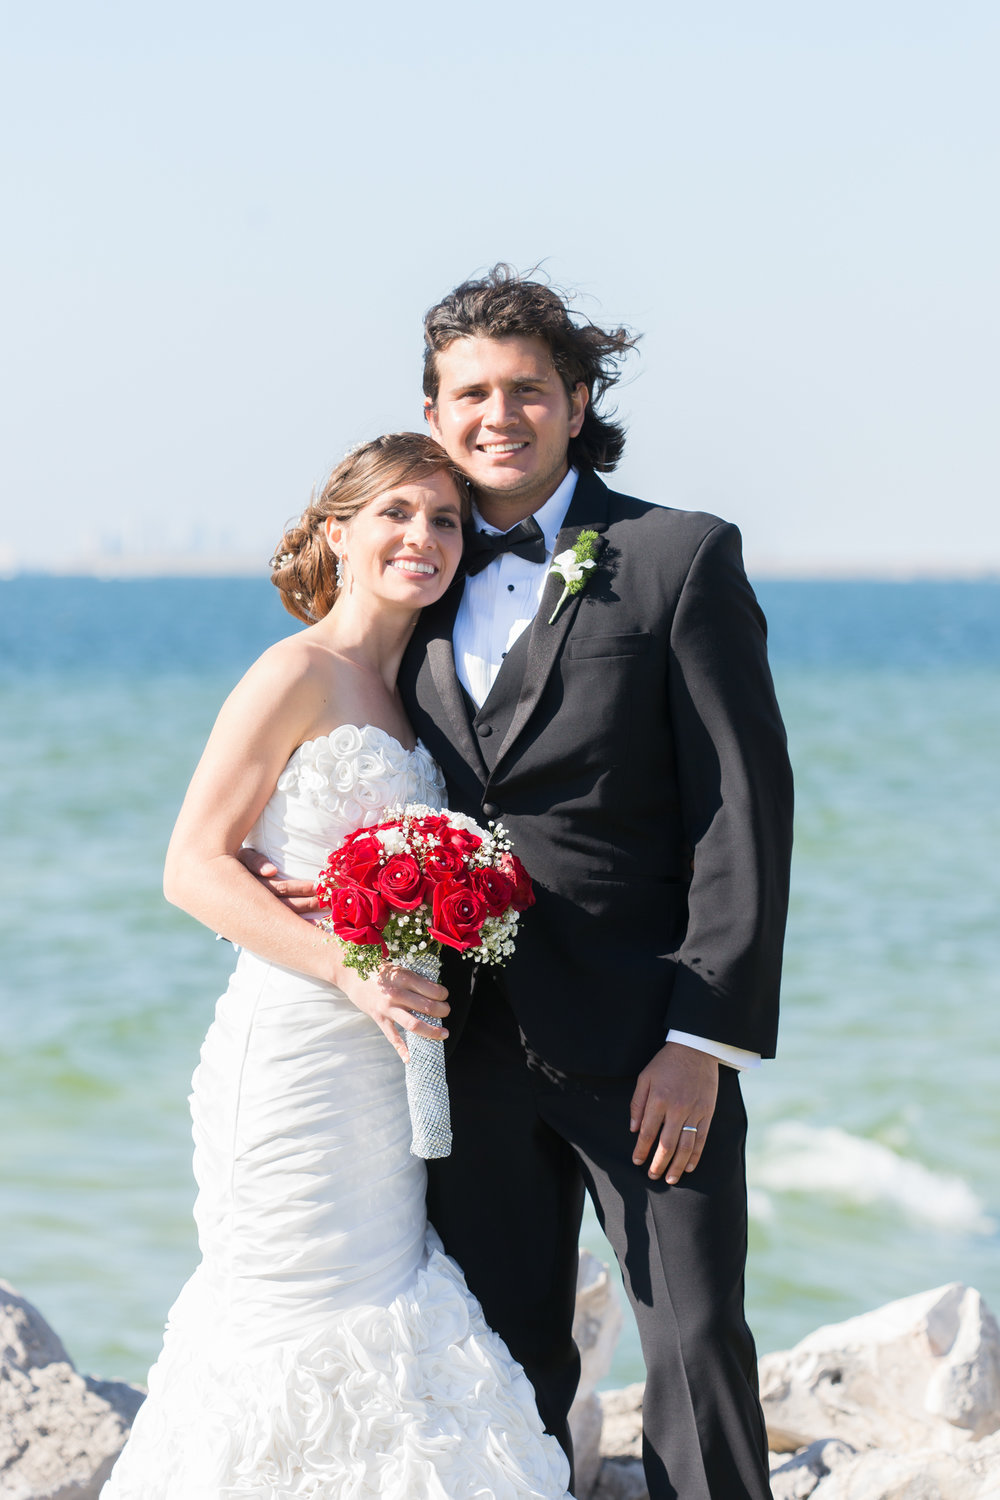 apollo-beach-wedding-photographer, bride-and-groom-photographer-florida